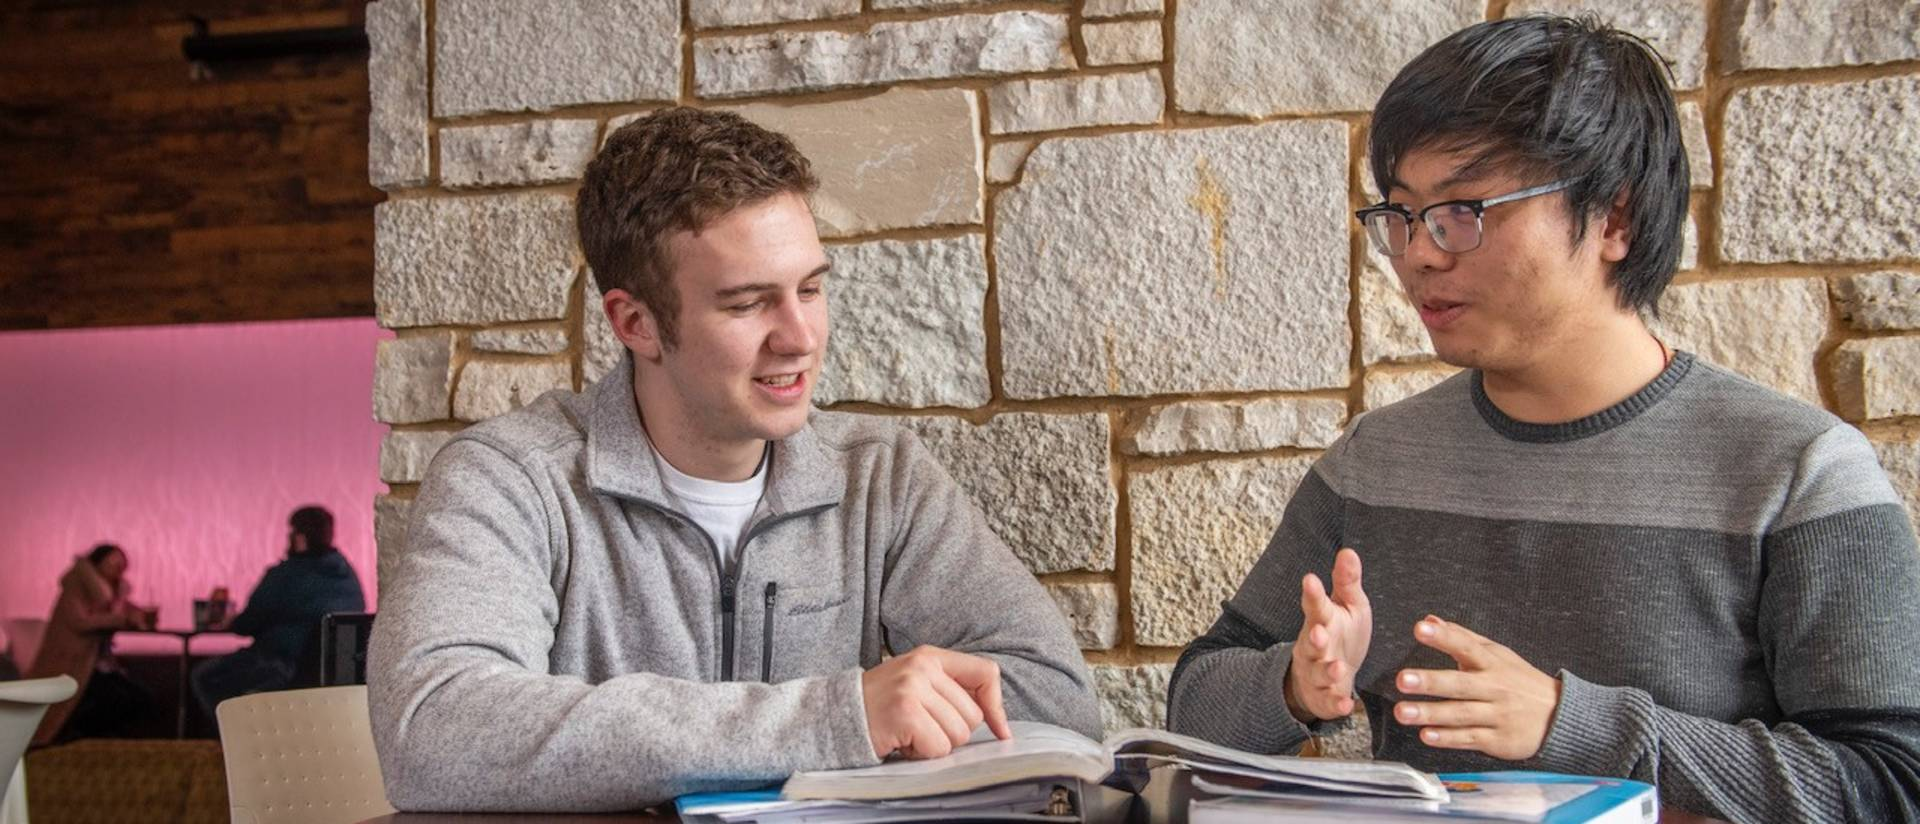 Noah Turecek (left) and Mingyang Qu meet to catch up on classes and life, but also to help each other build their language skills and their understanding of cultures that differ from their own.